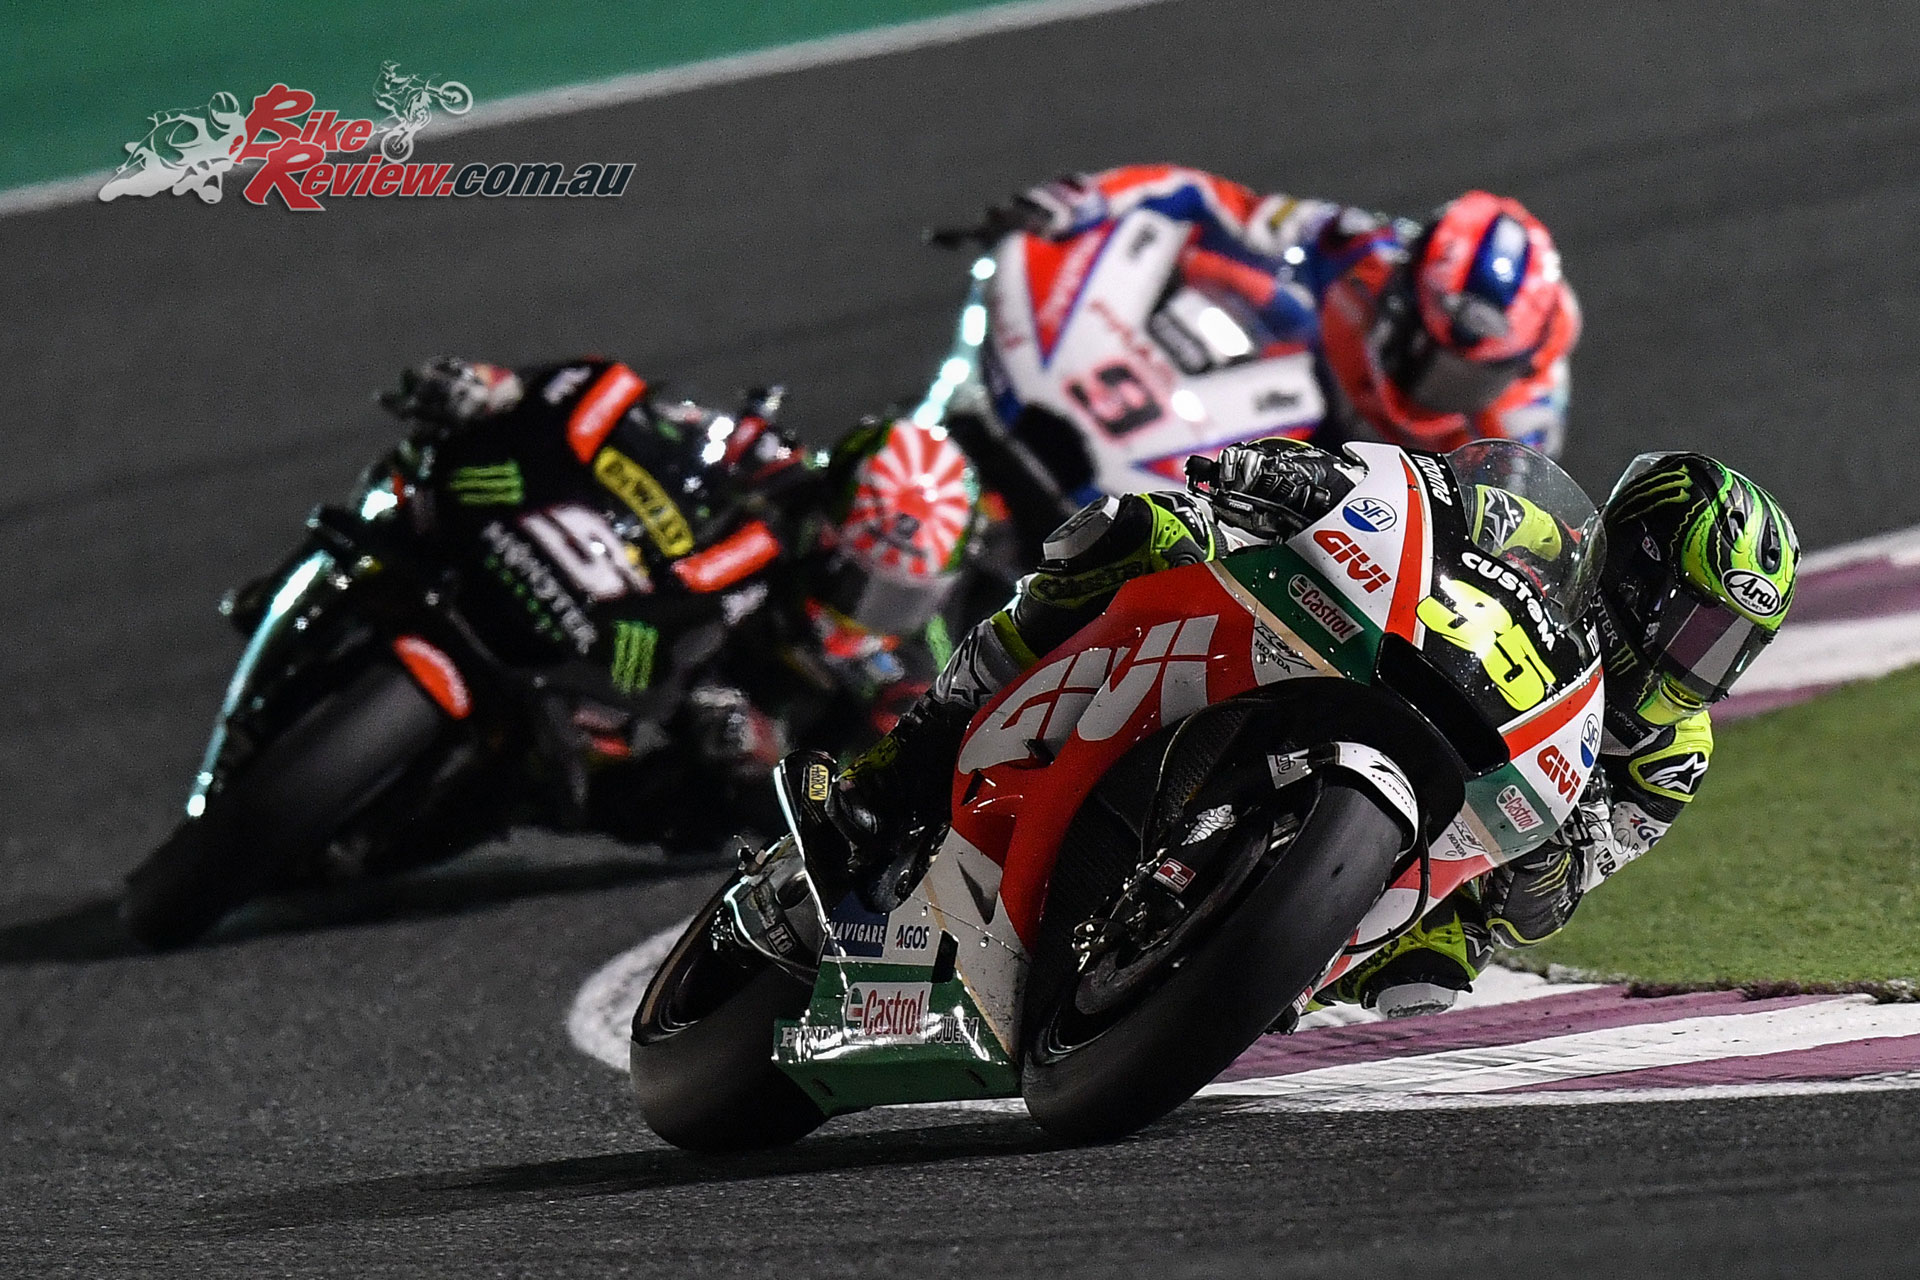 Cal Crutchlow was leading independent rider in fourth